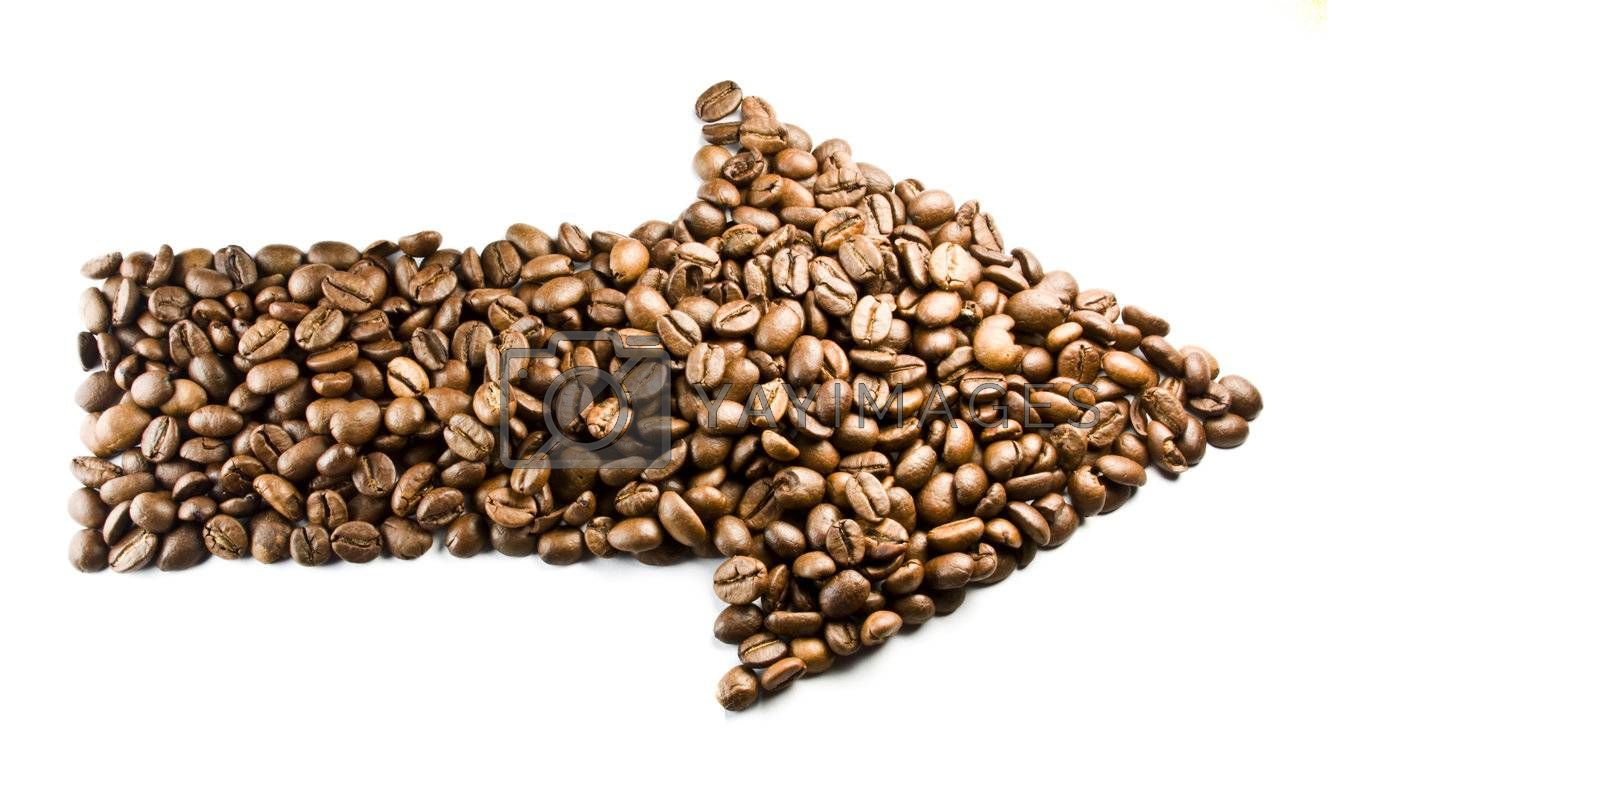 arrow made from coffe beans, on white background